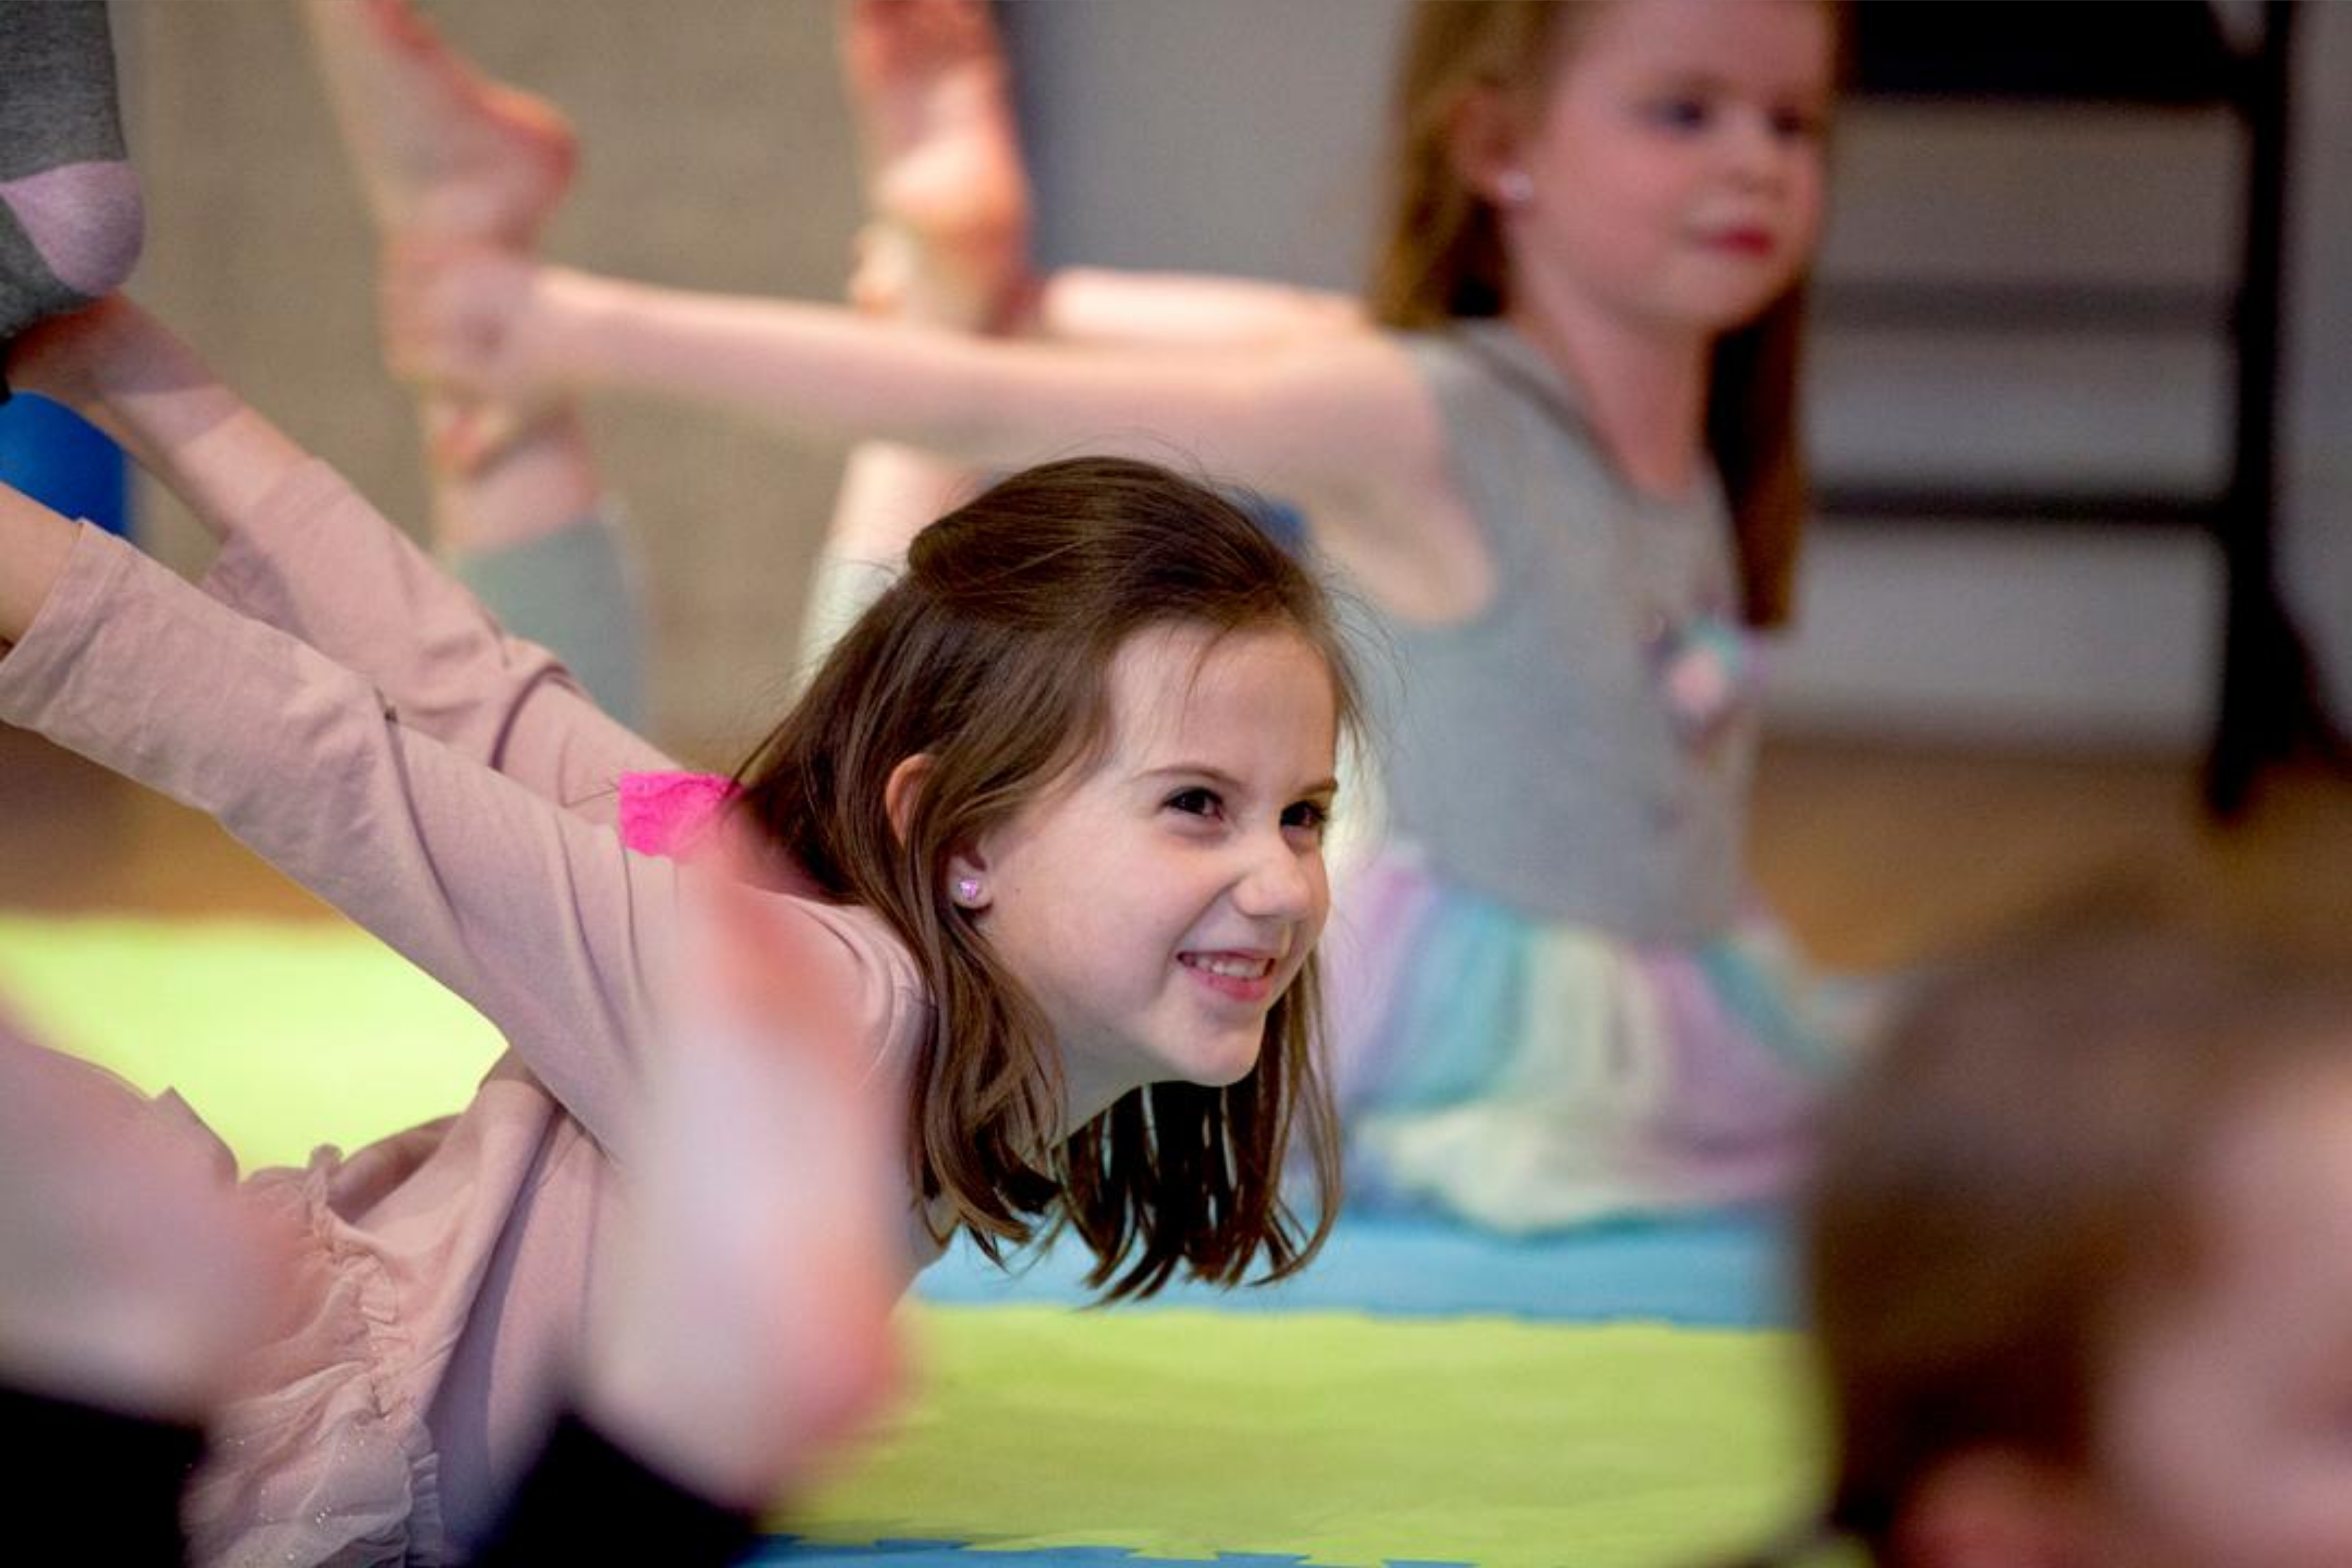 https://citydancearts.com/wp-content/uploads/2020/07/Welcome-to-Kieras-6th-Birthday-Party-5.png